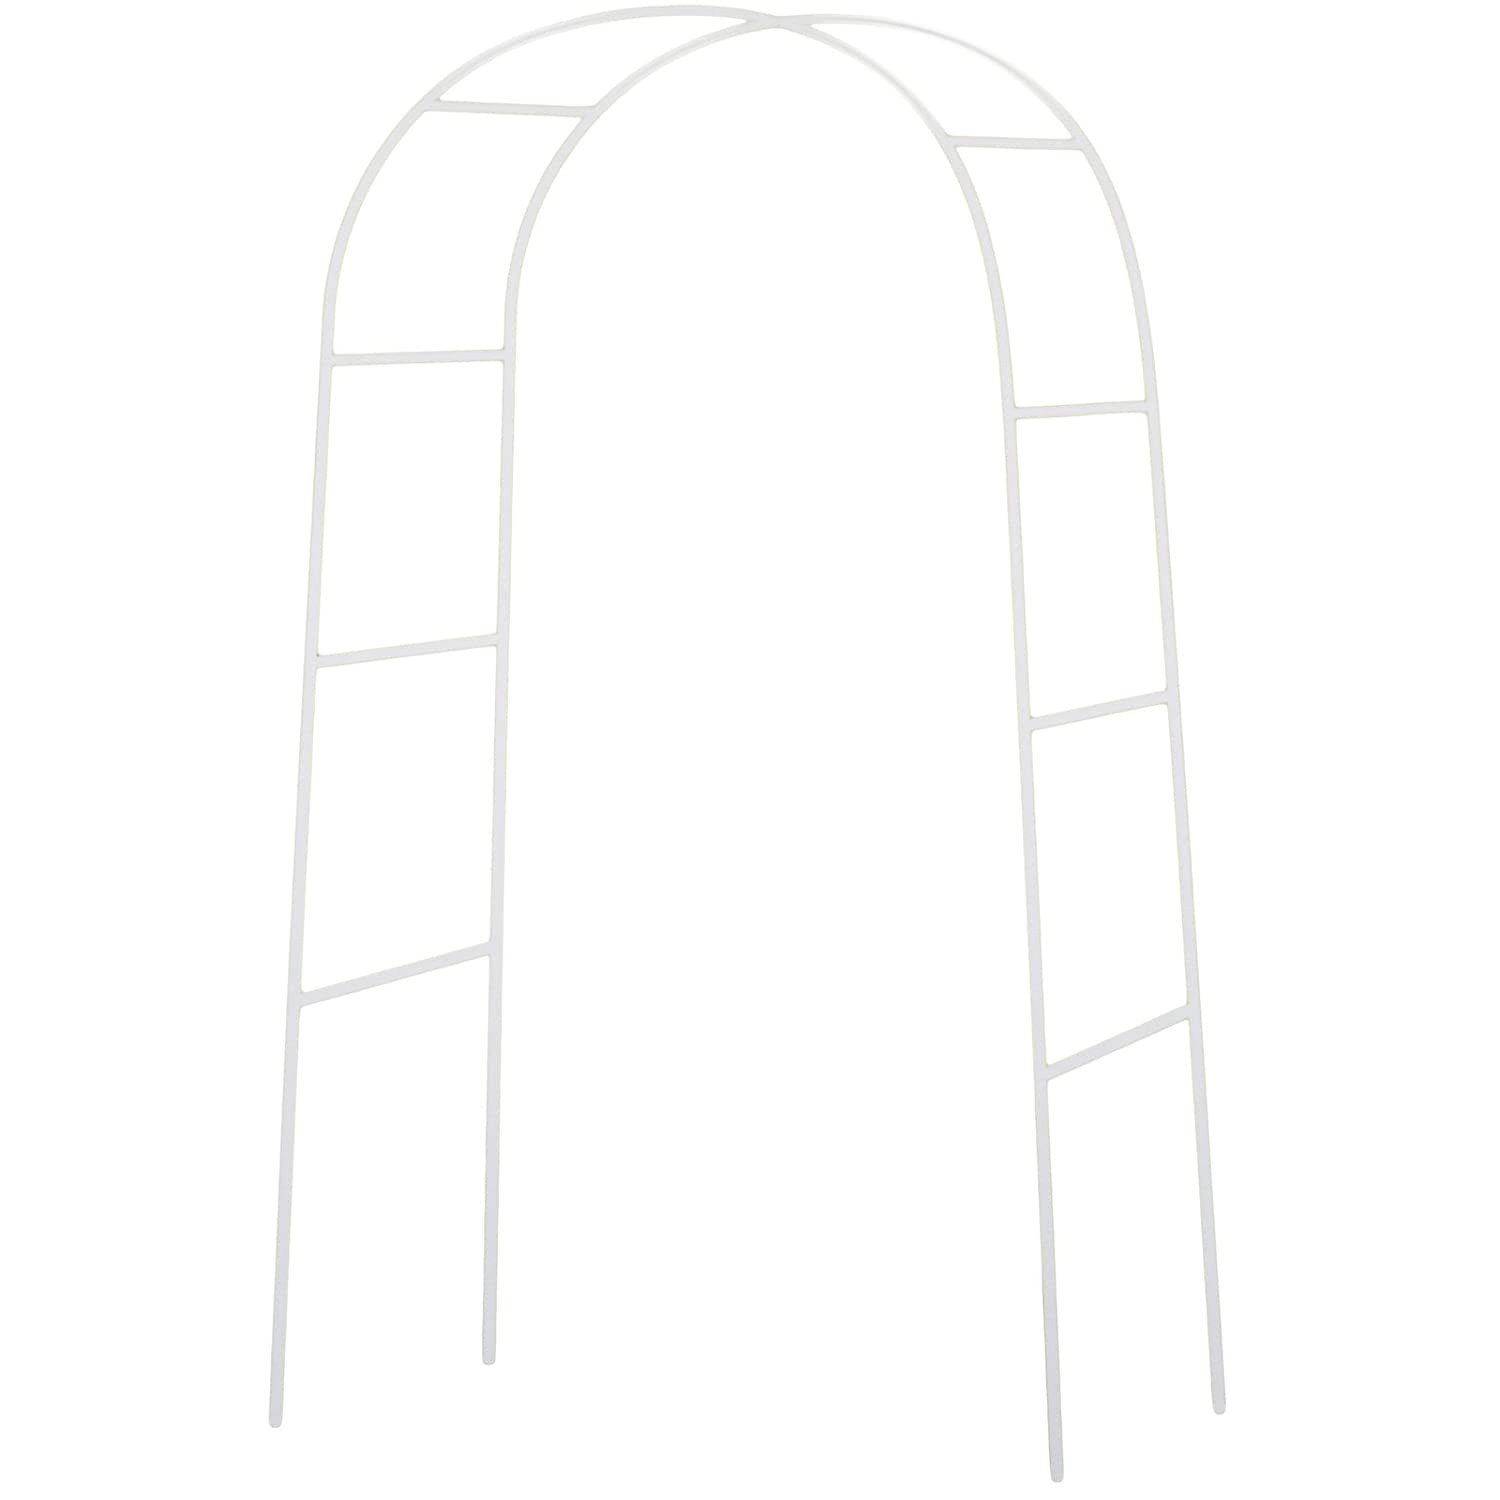 Amazon.com: NStar Real Sized Metal Decoration Arch, White: Arts ...